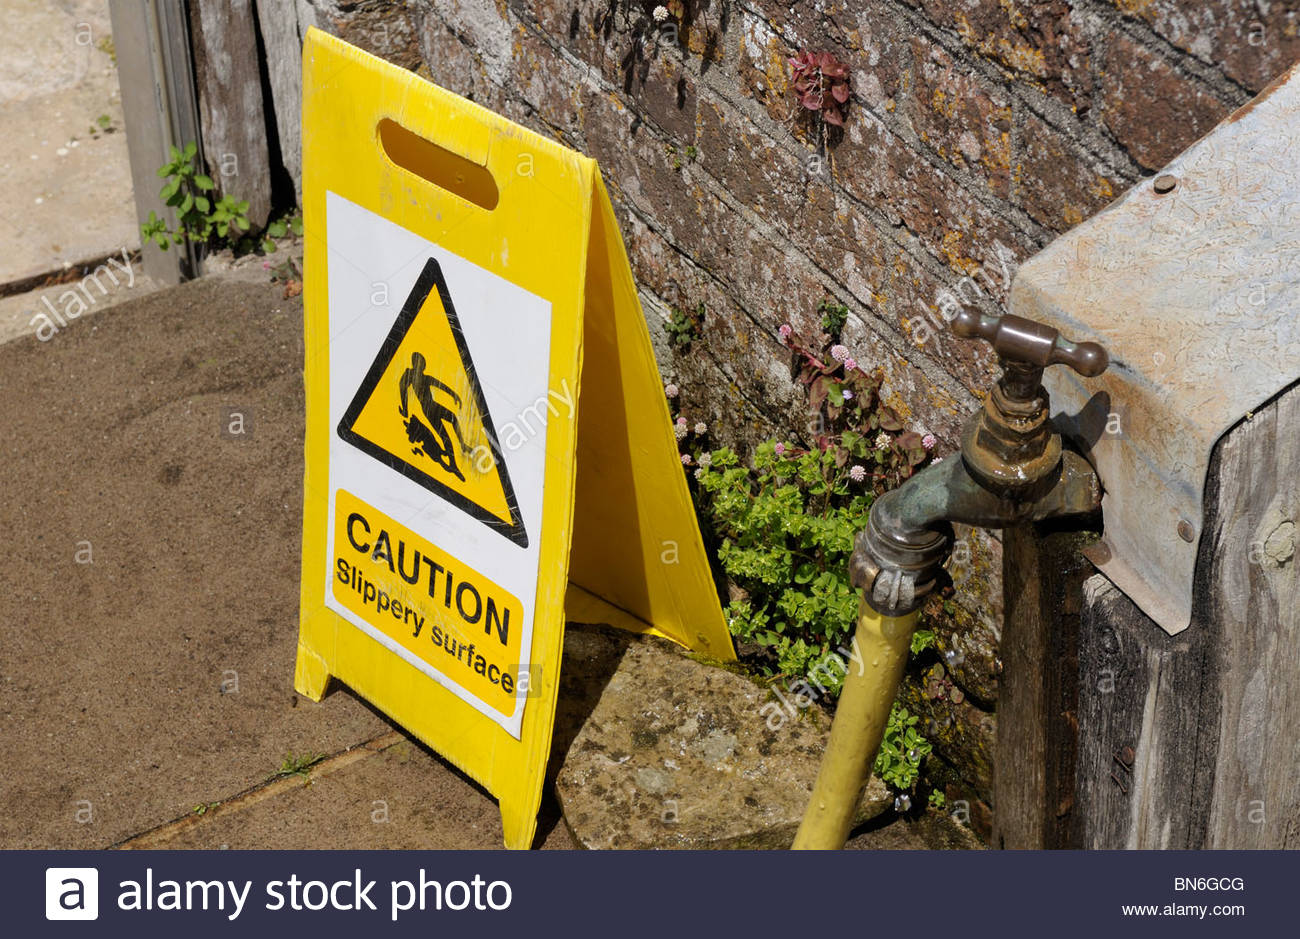 Top down image of a Caution - Slippery Surface warning sign, England, UK - Stock Image